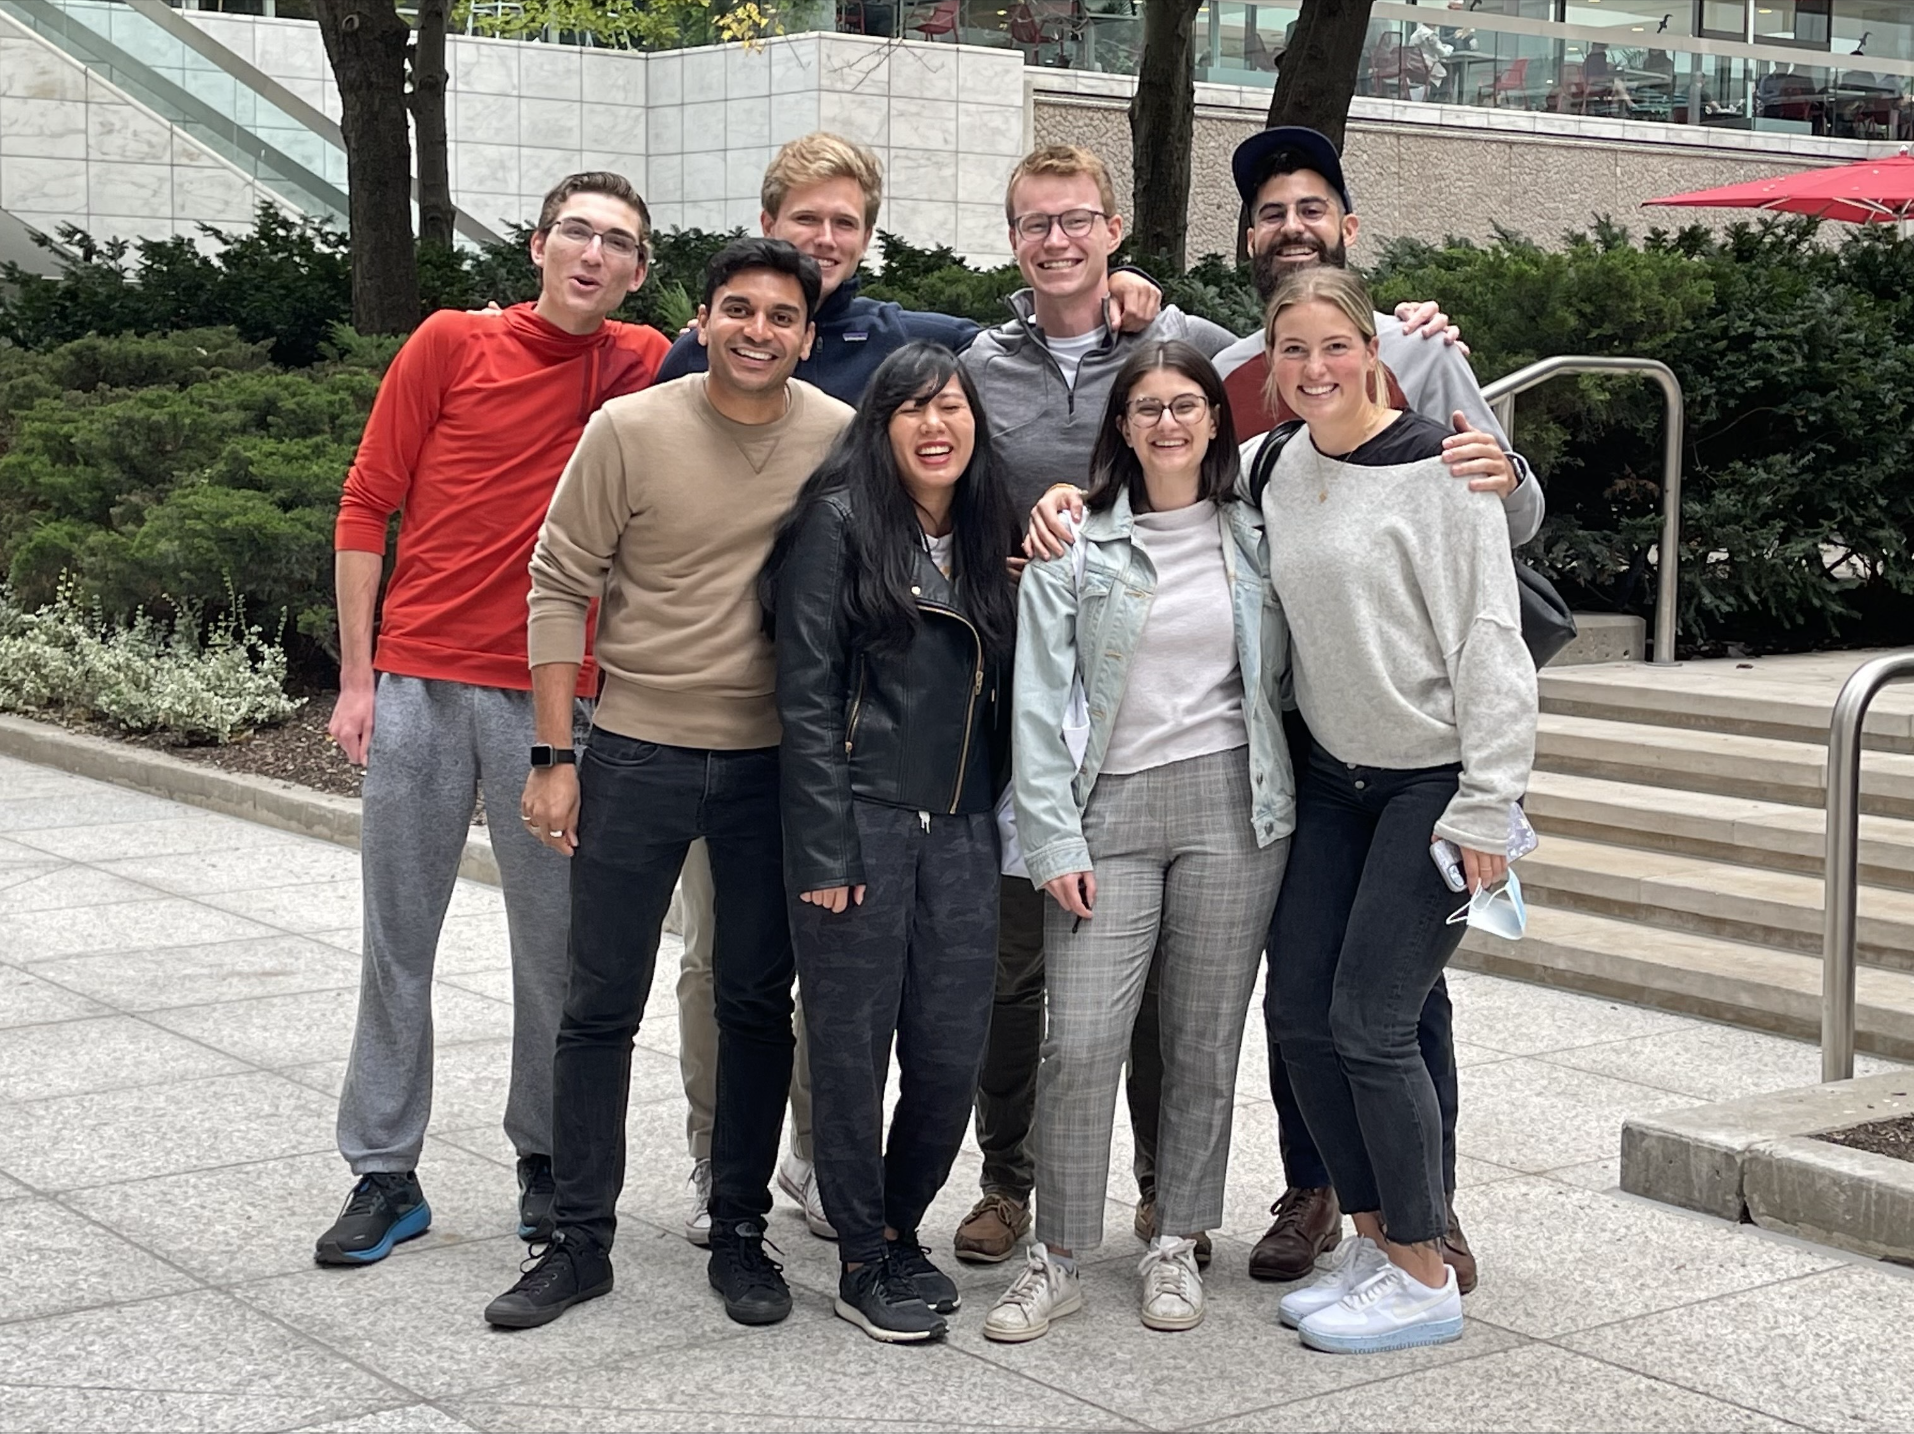 The Phonic team in Toronto